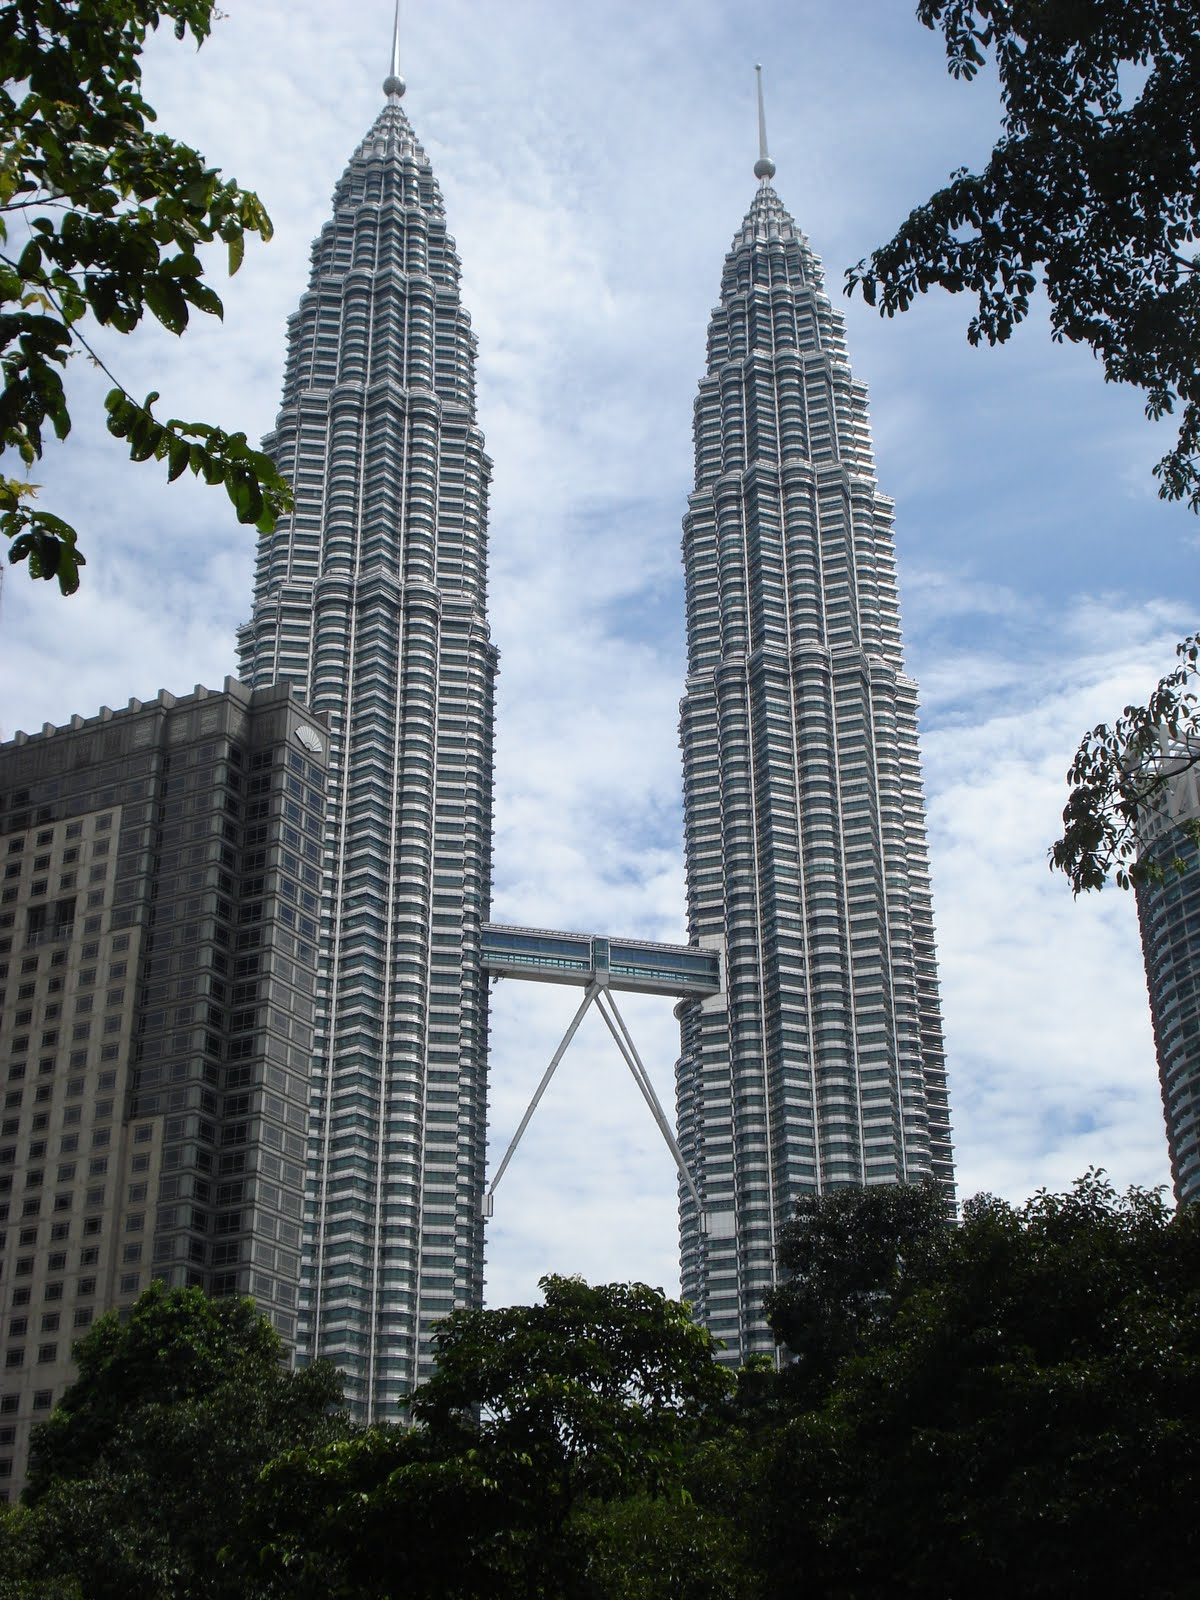 a food and travel blog petronas twin towers of all day these towers stand tall above the leafy greens as if to serve as a guide to the lost travelers making their way